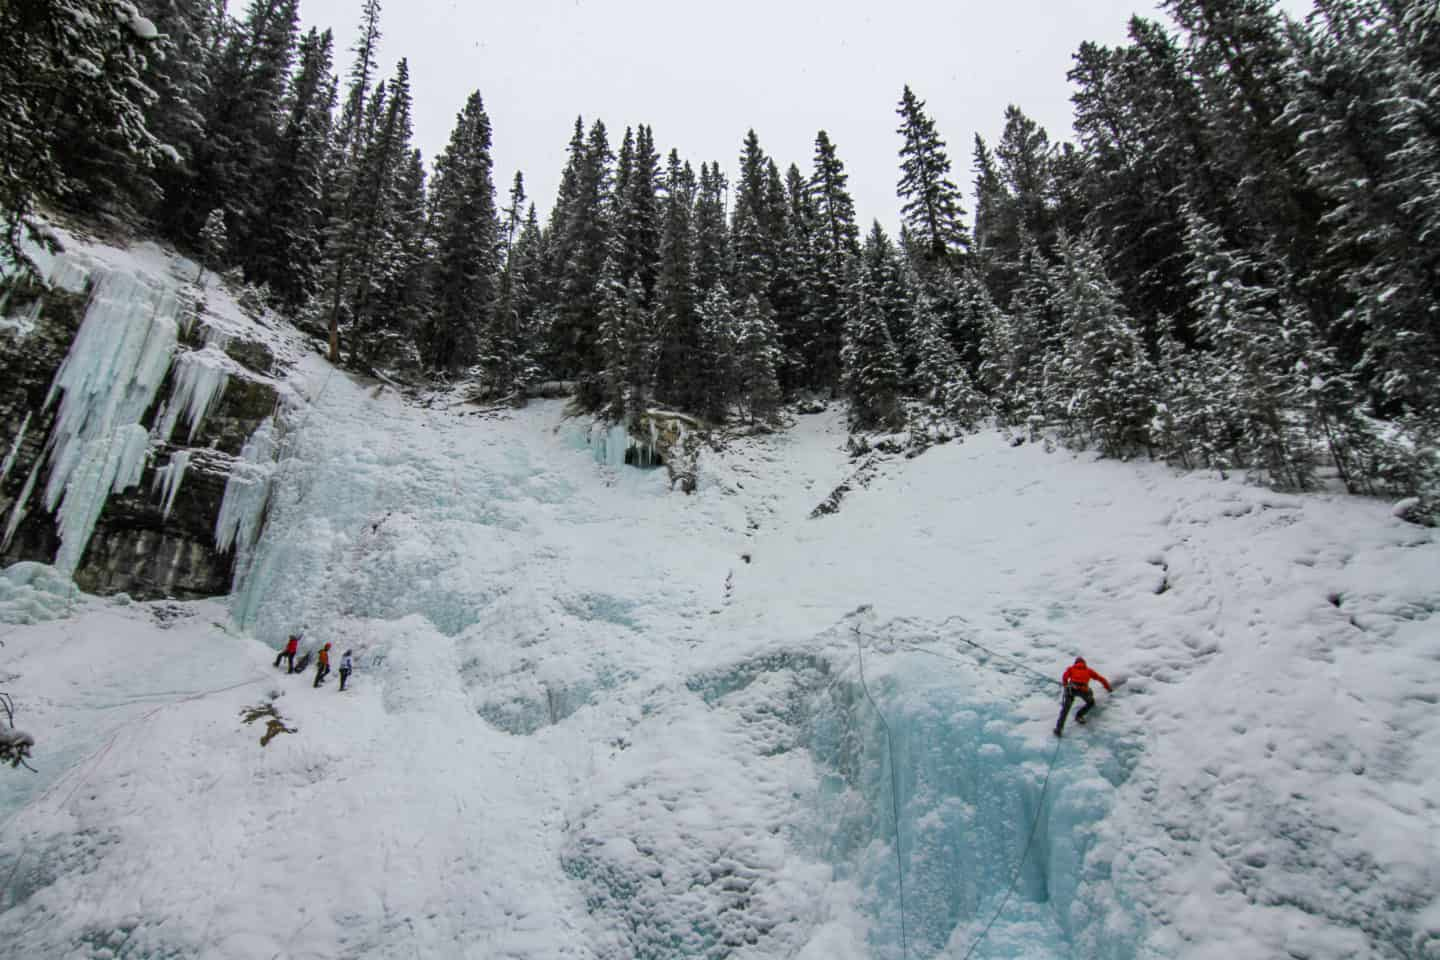 Ice climbing can be done in the winter when hiking Johnston Canyon